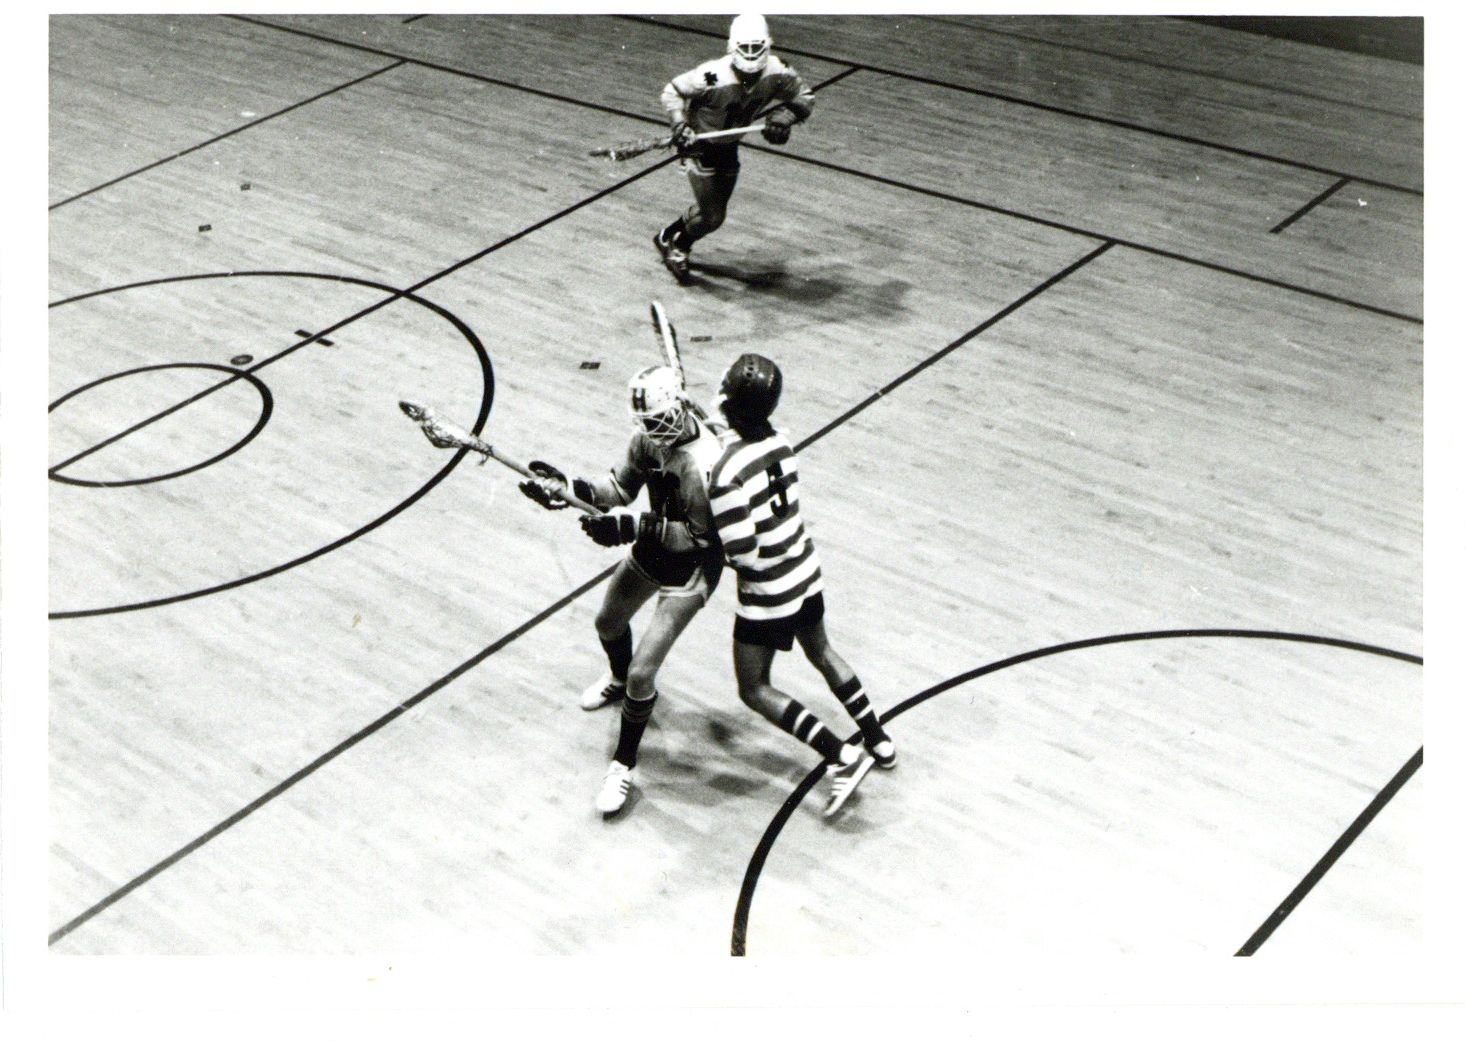 Image depicts a black and white photo of people playing lacrosse